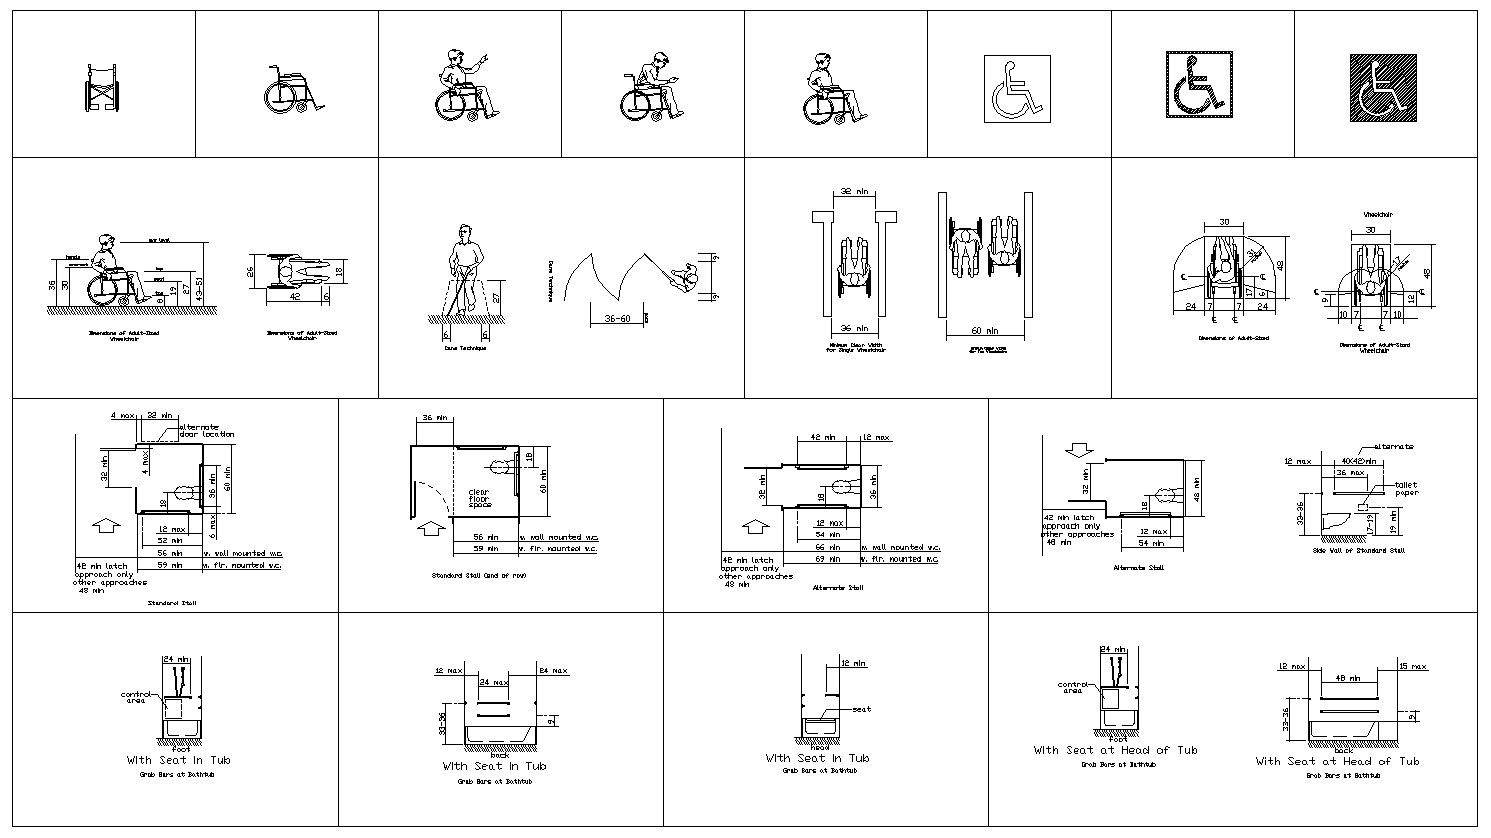 Accessibility Facilities Drawings V1 – CAD Design | Free CAD Blocks,Drawings,Details  Cad